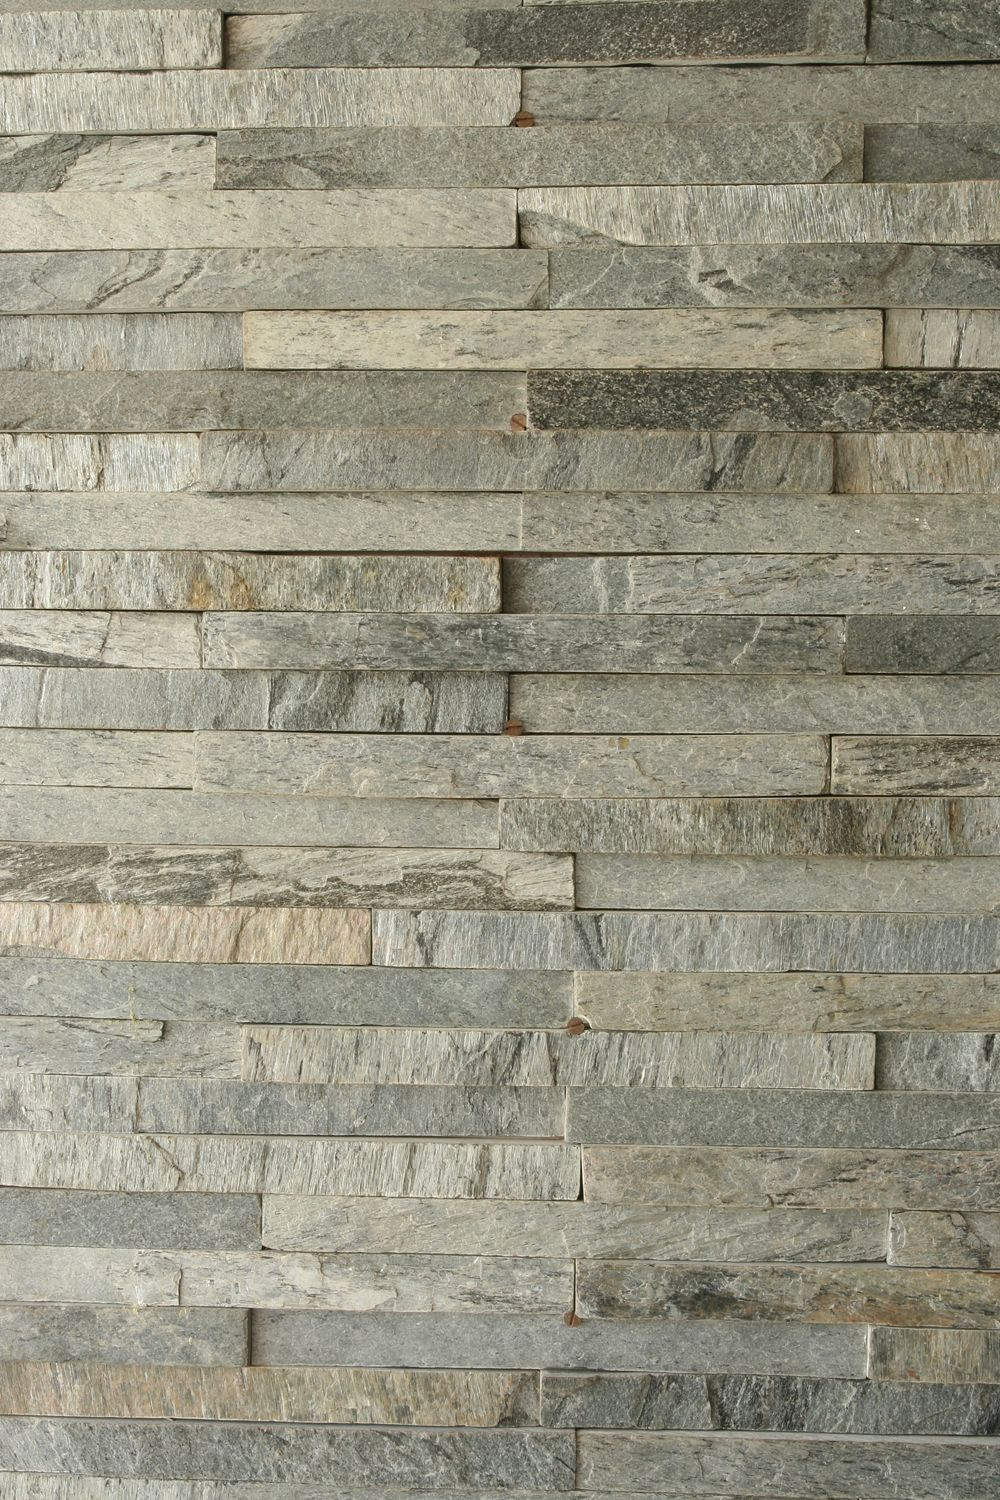 Silver Shine Quartzite Wall Cladding Natural Stone Wall